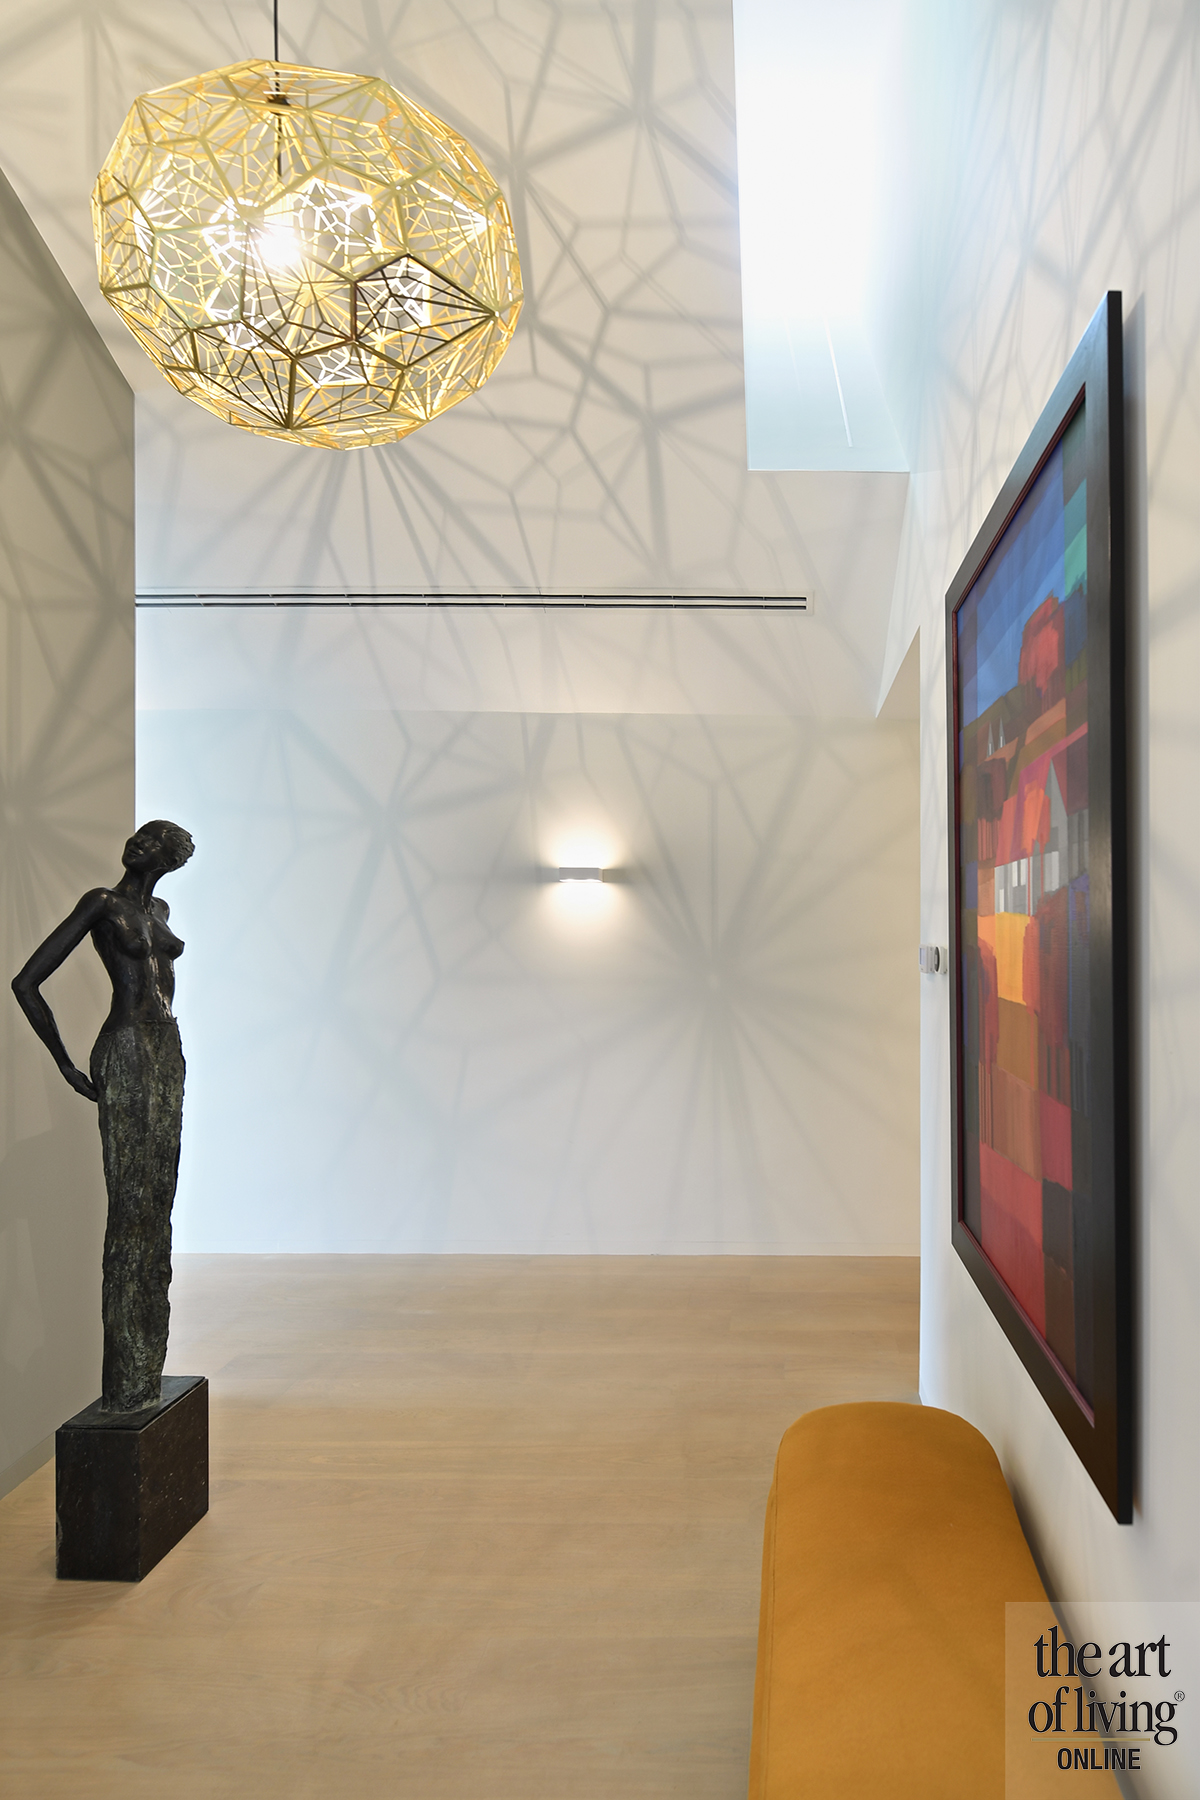 Licht interieur | Grosveld van der velde, the art of living